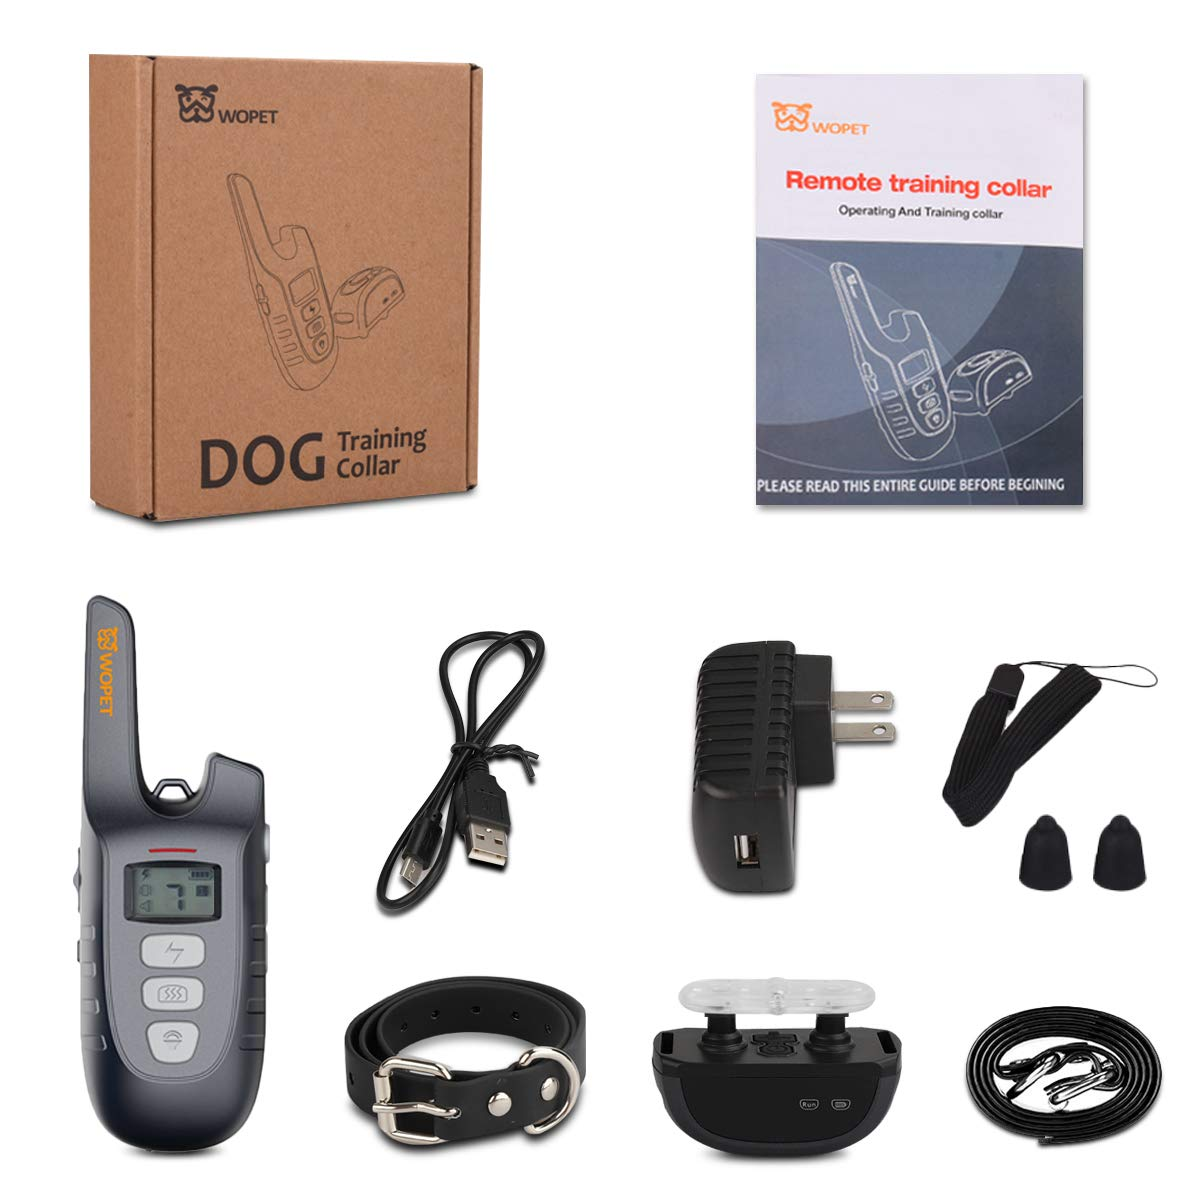 WOPET Dog Training Collar, 1500ft Remote Dog Shock Collar,100% Waterproof and Rechargeable with 3 Training Modes Electric/Shock/Vibra/Beep for Small Medium Large Dogs (Grey) by WOPET